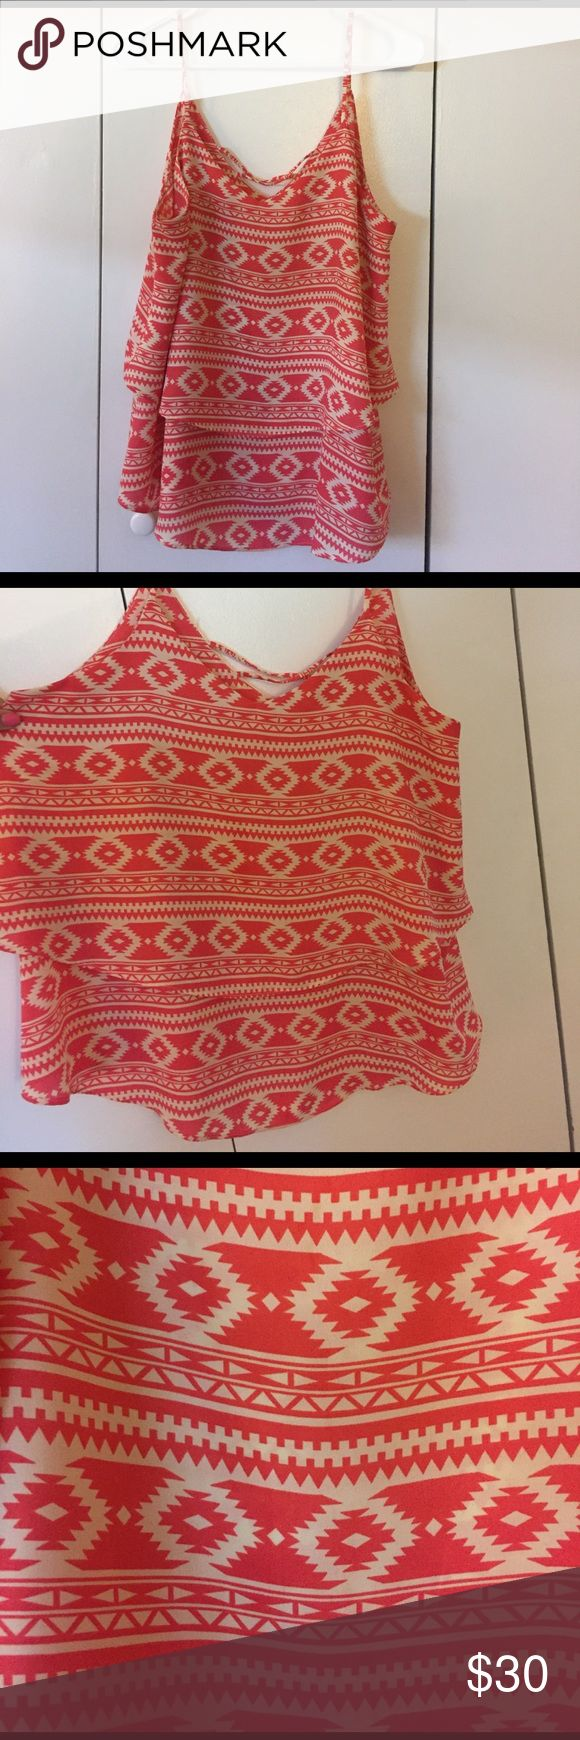 Coral azteca print tank top Large Francesca's coral Aztec print tank top. Flowly with two staggered layers. Cris-crop back. Only worn twice Francesca's Collections Tops Tank Tops